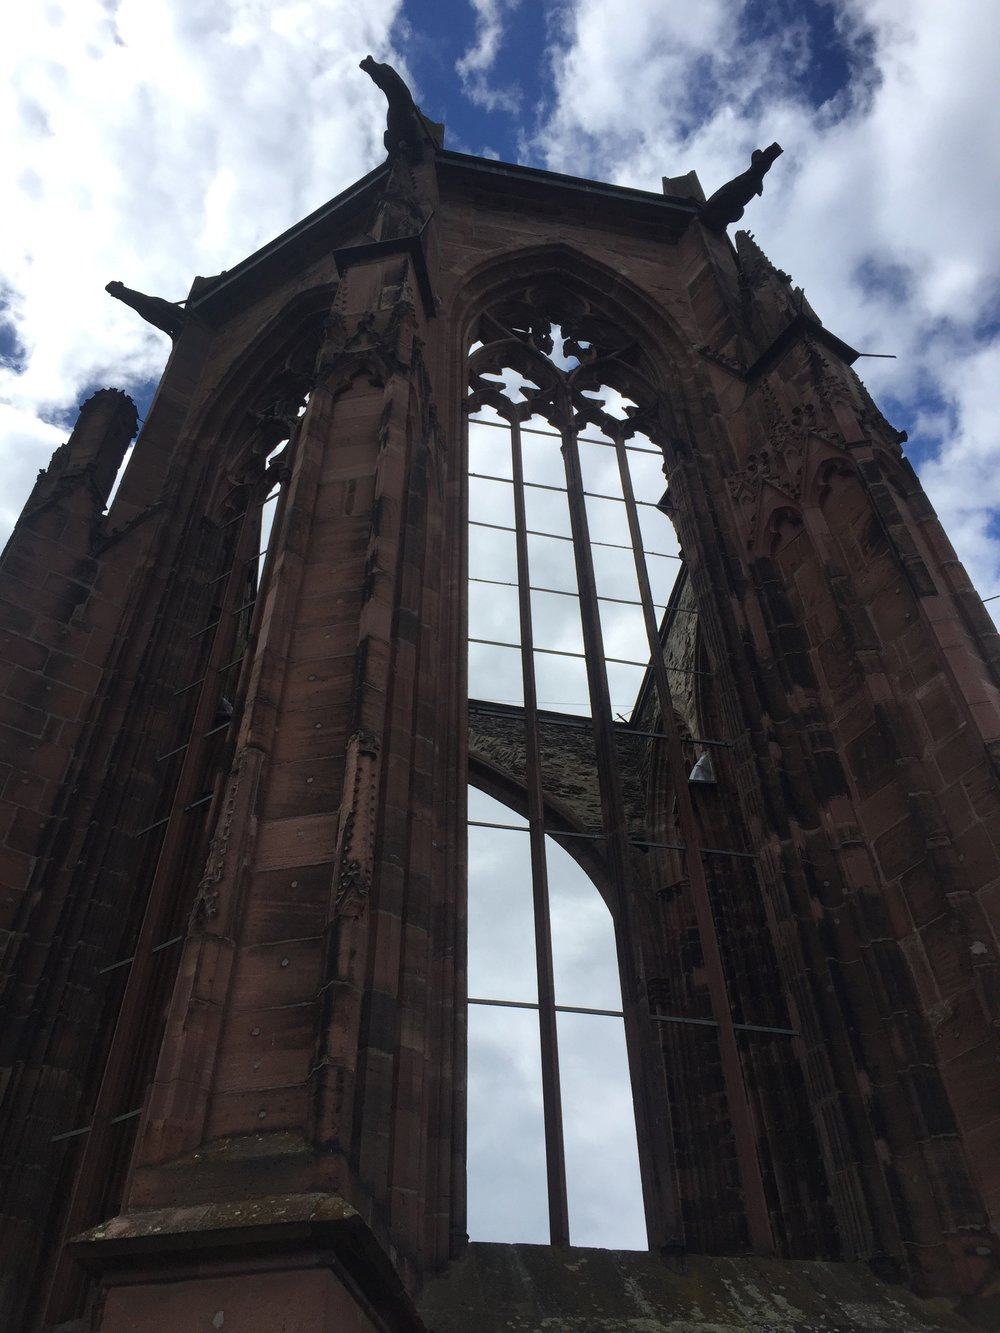 The ruins of a cathedral in Bacharach.